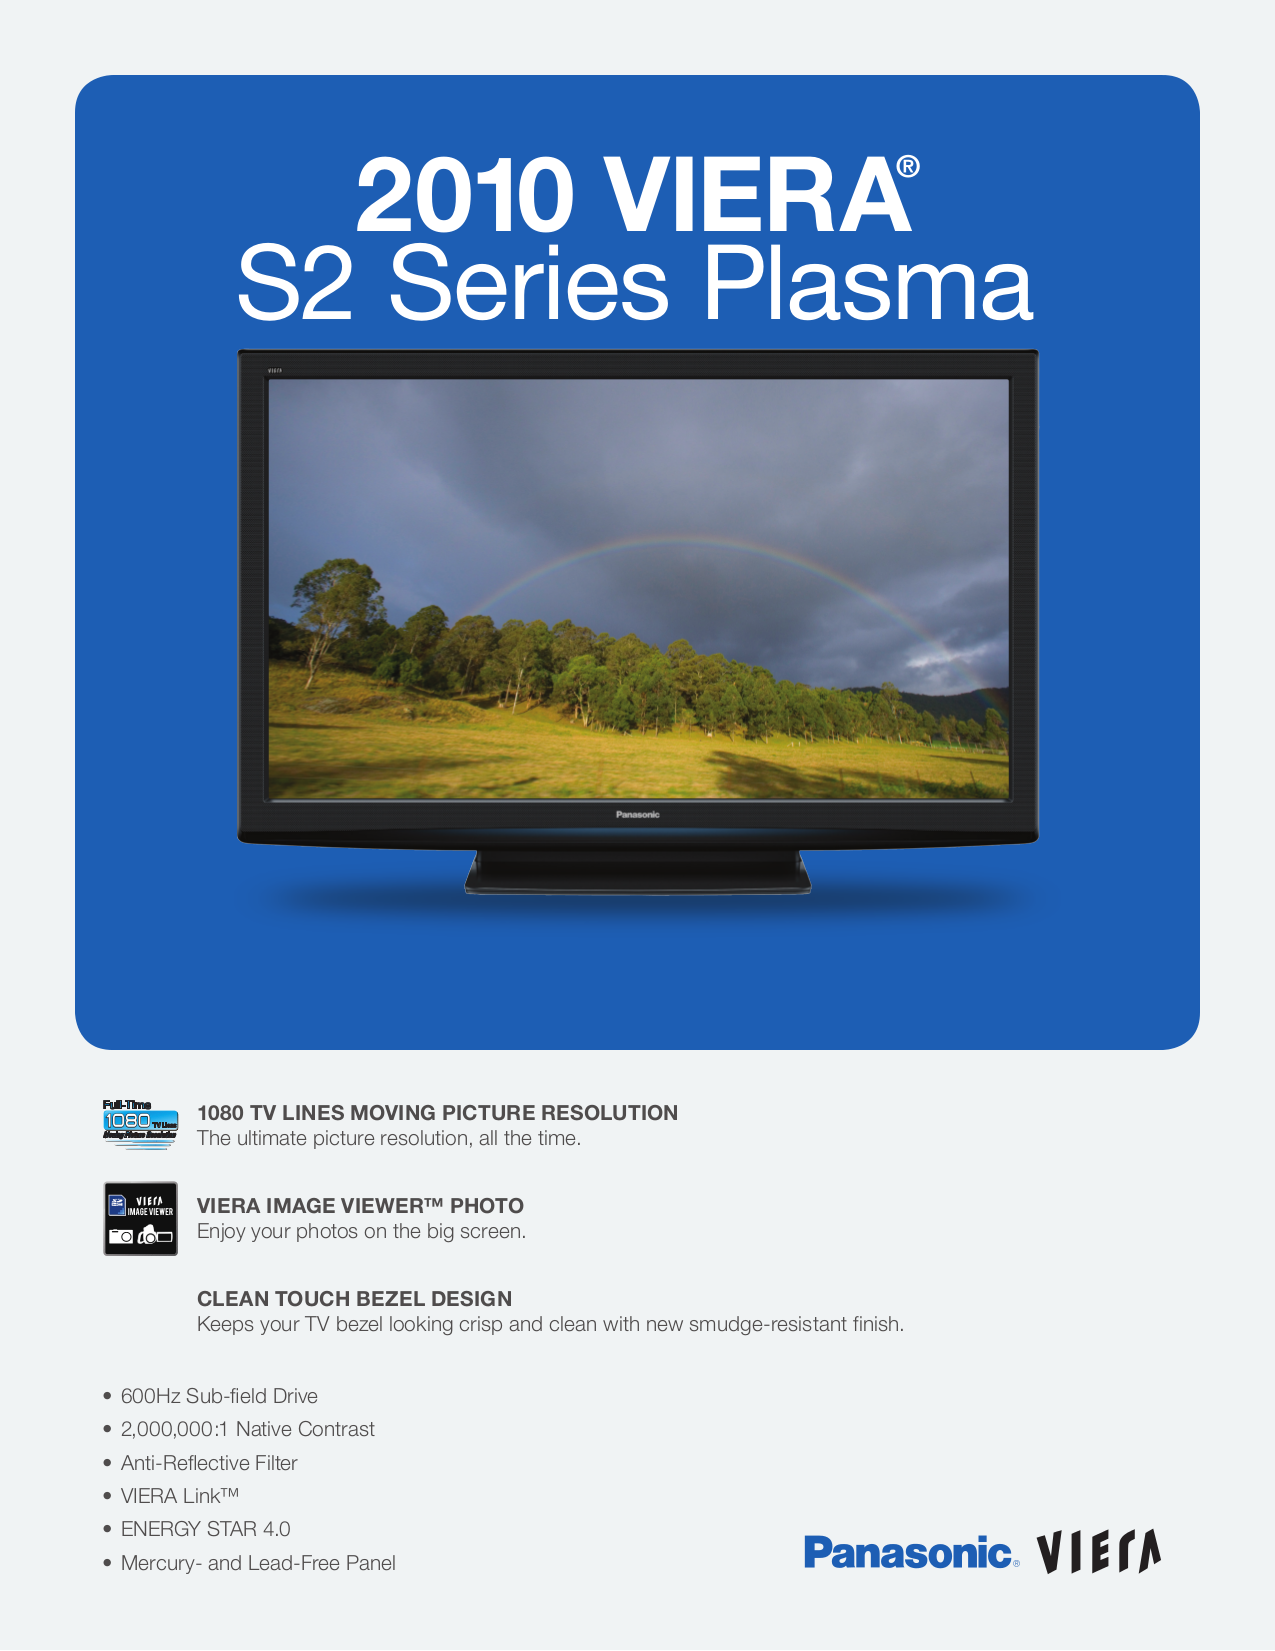 how to change the password on a panasonic viera tv